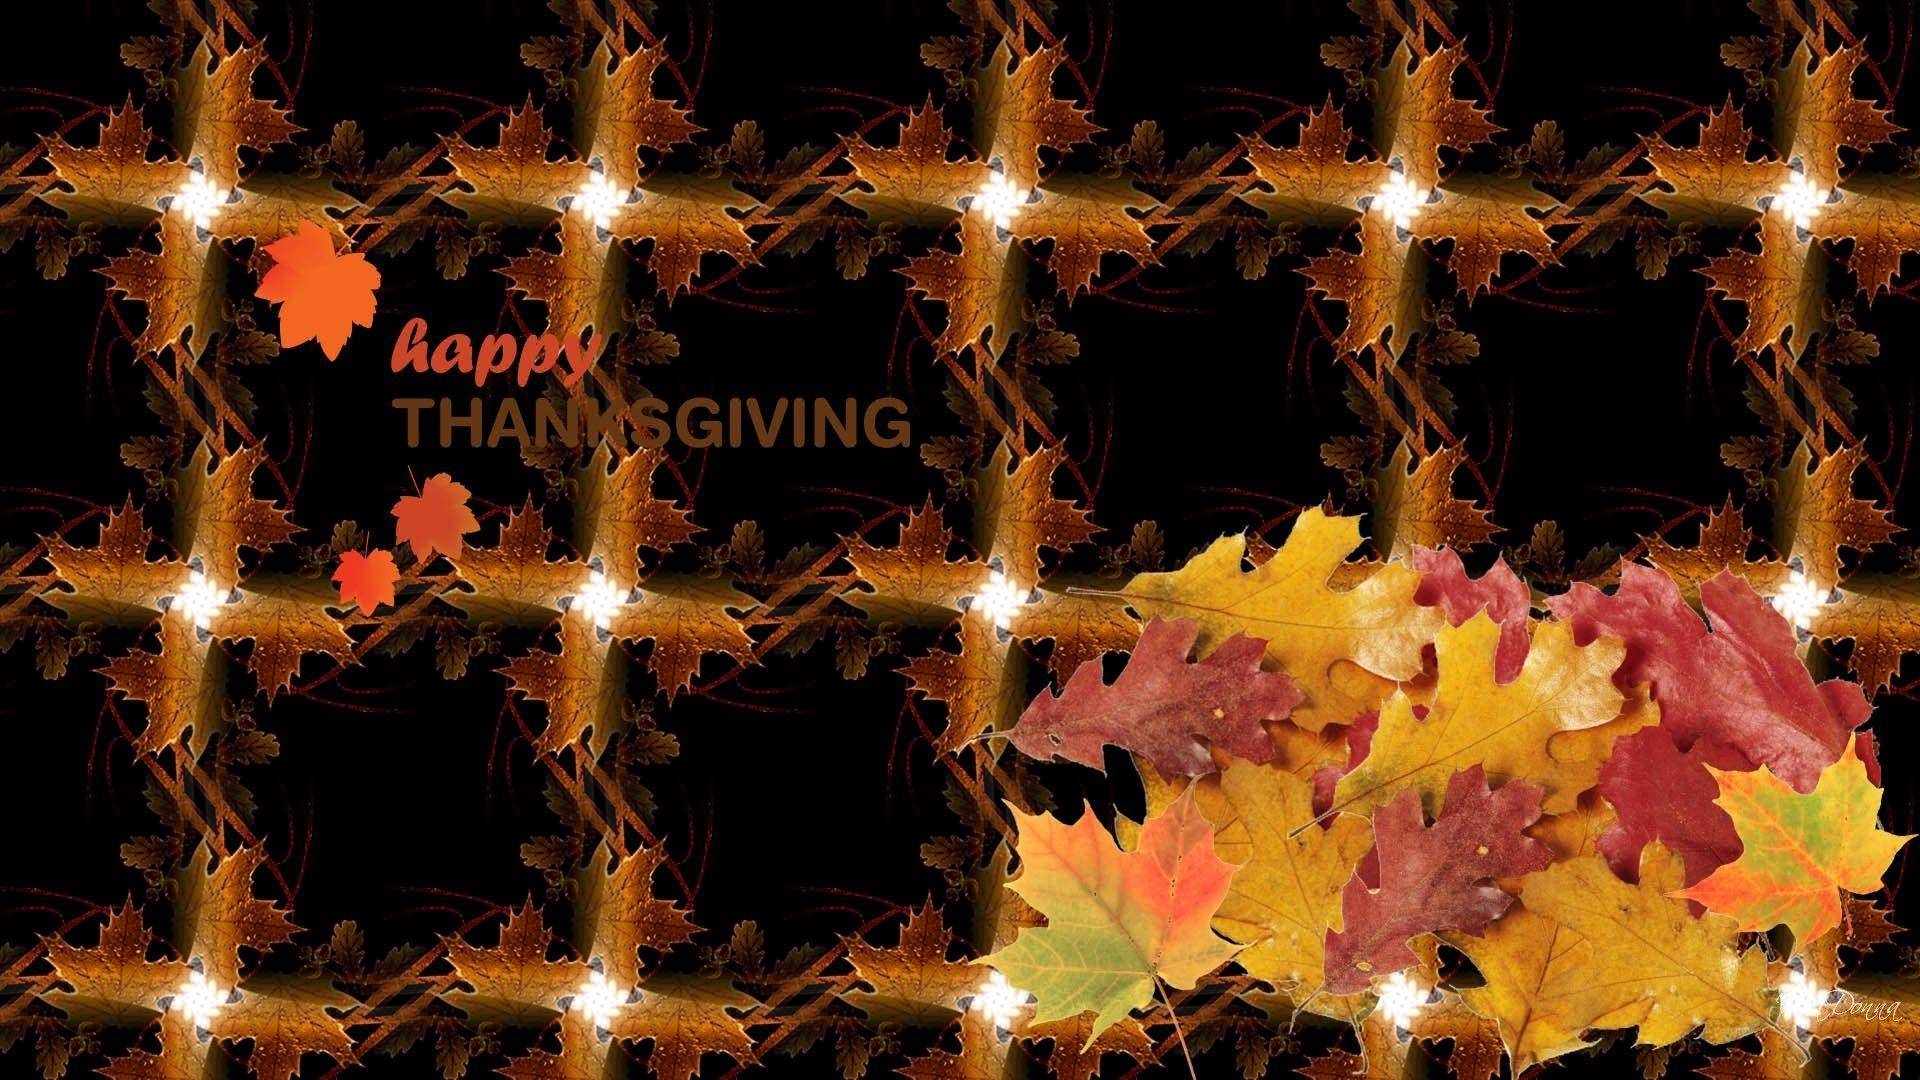 happy thanksgivinghd wallpapers - photo #18